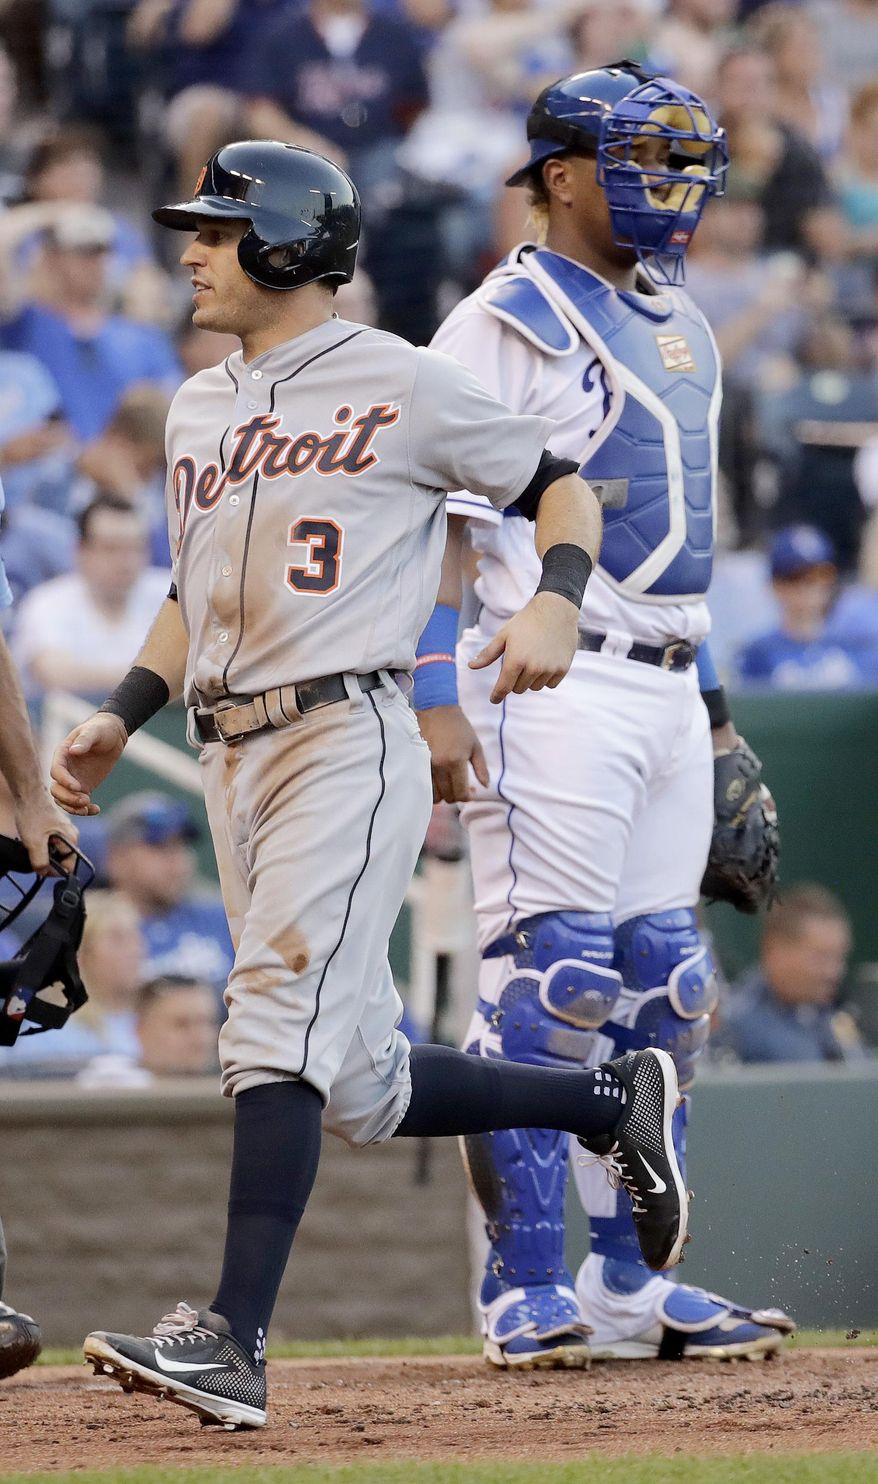 Detroit Tigers' Ian Kinsler (3) crosses the plate in front of Kansas City Royals catcher Salvador Perez to score on a two-run triple by Nicholas Castellanos during the second inning of a baseball game Tuesday, July 18, 2017, in Kansas City, Mo. (AP Photo/Charlie Riedel)